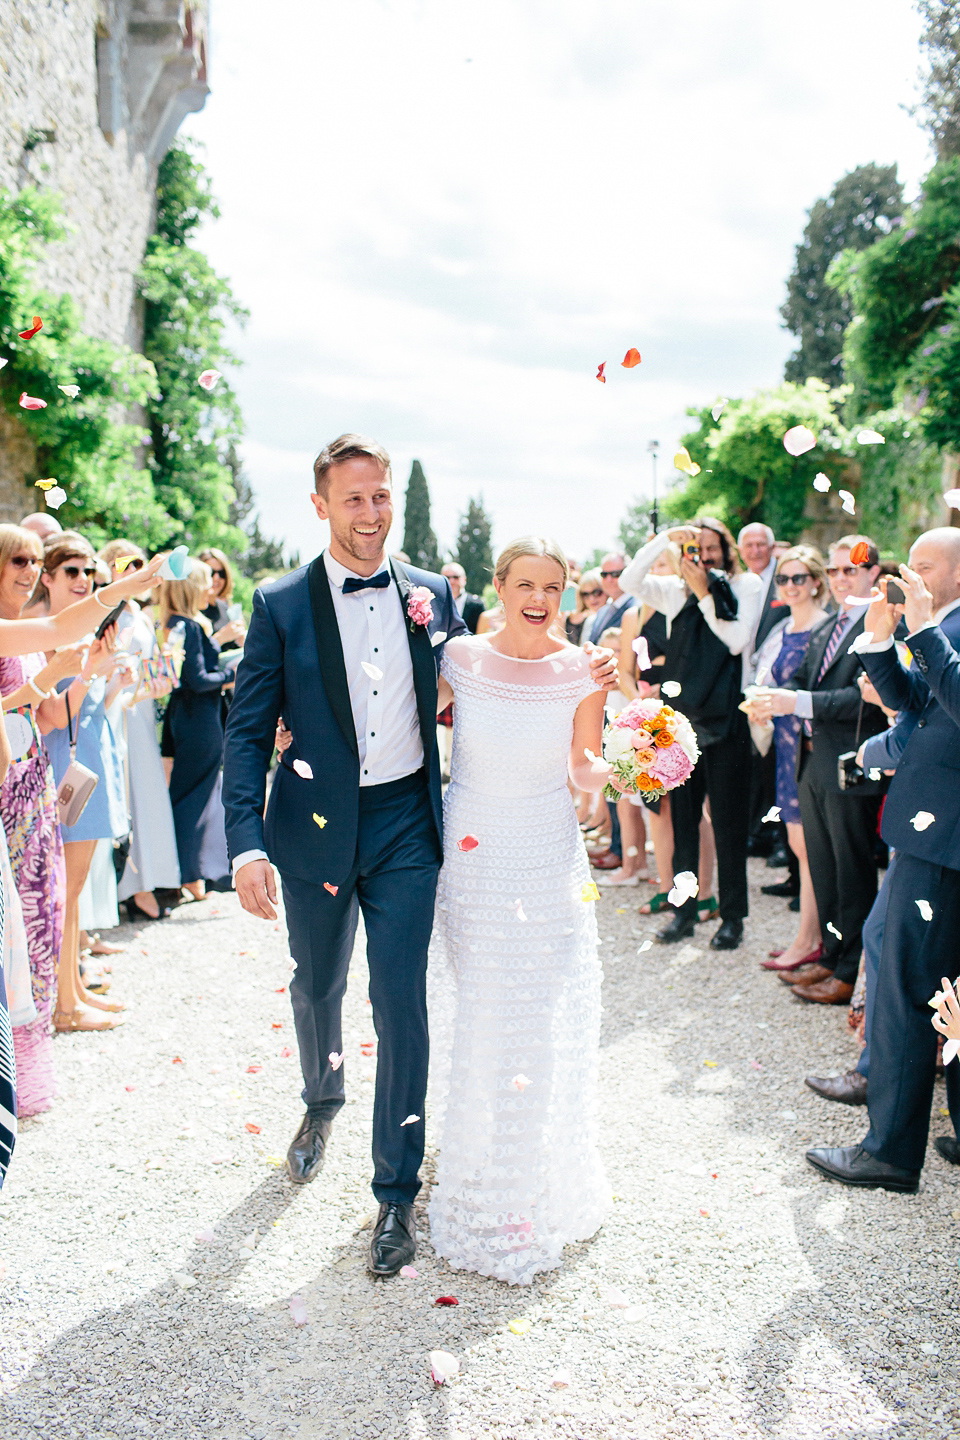 Temperley Elegance and Black Tie for a Fun-filled and Colourful Italian Wedding